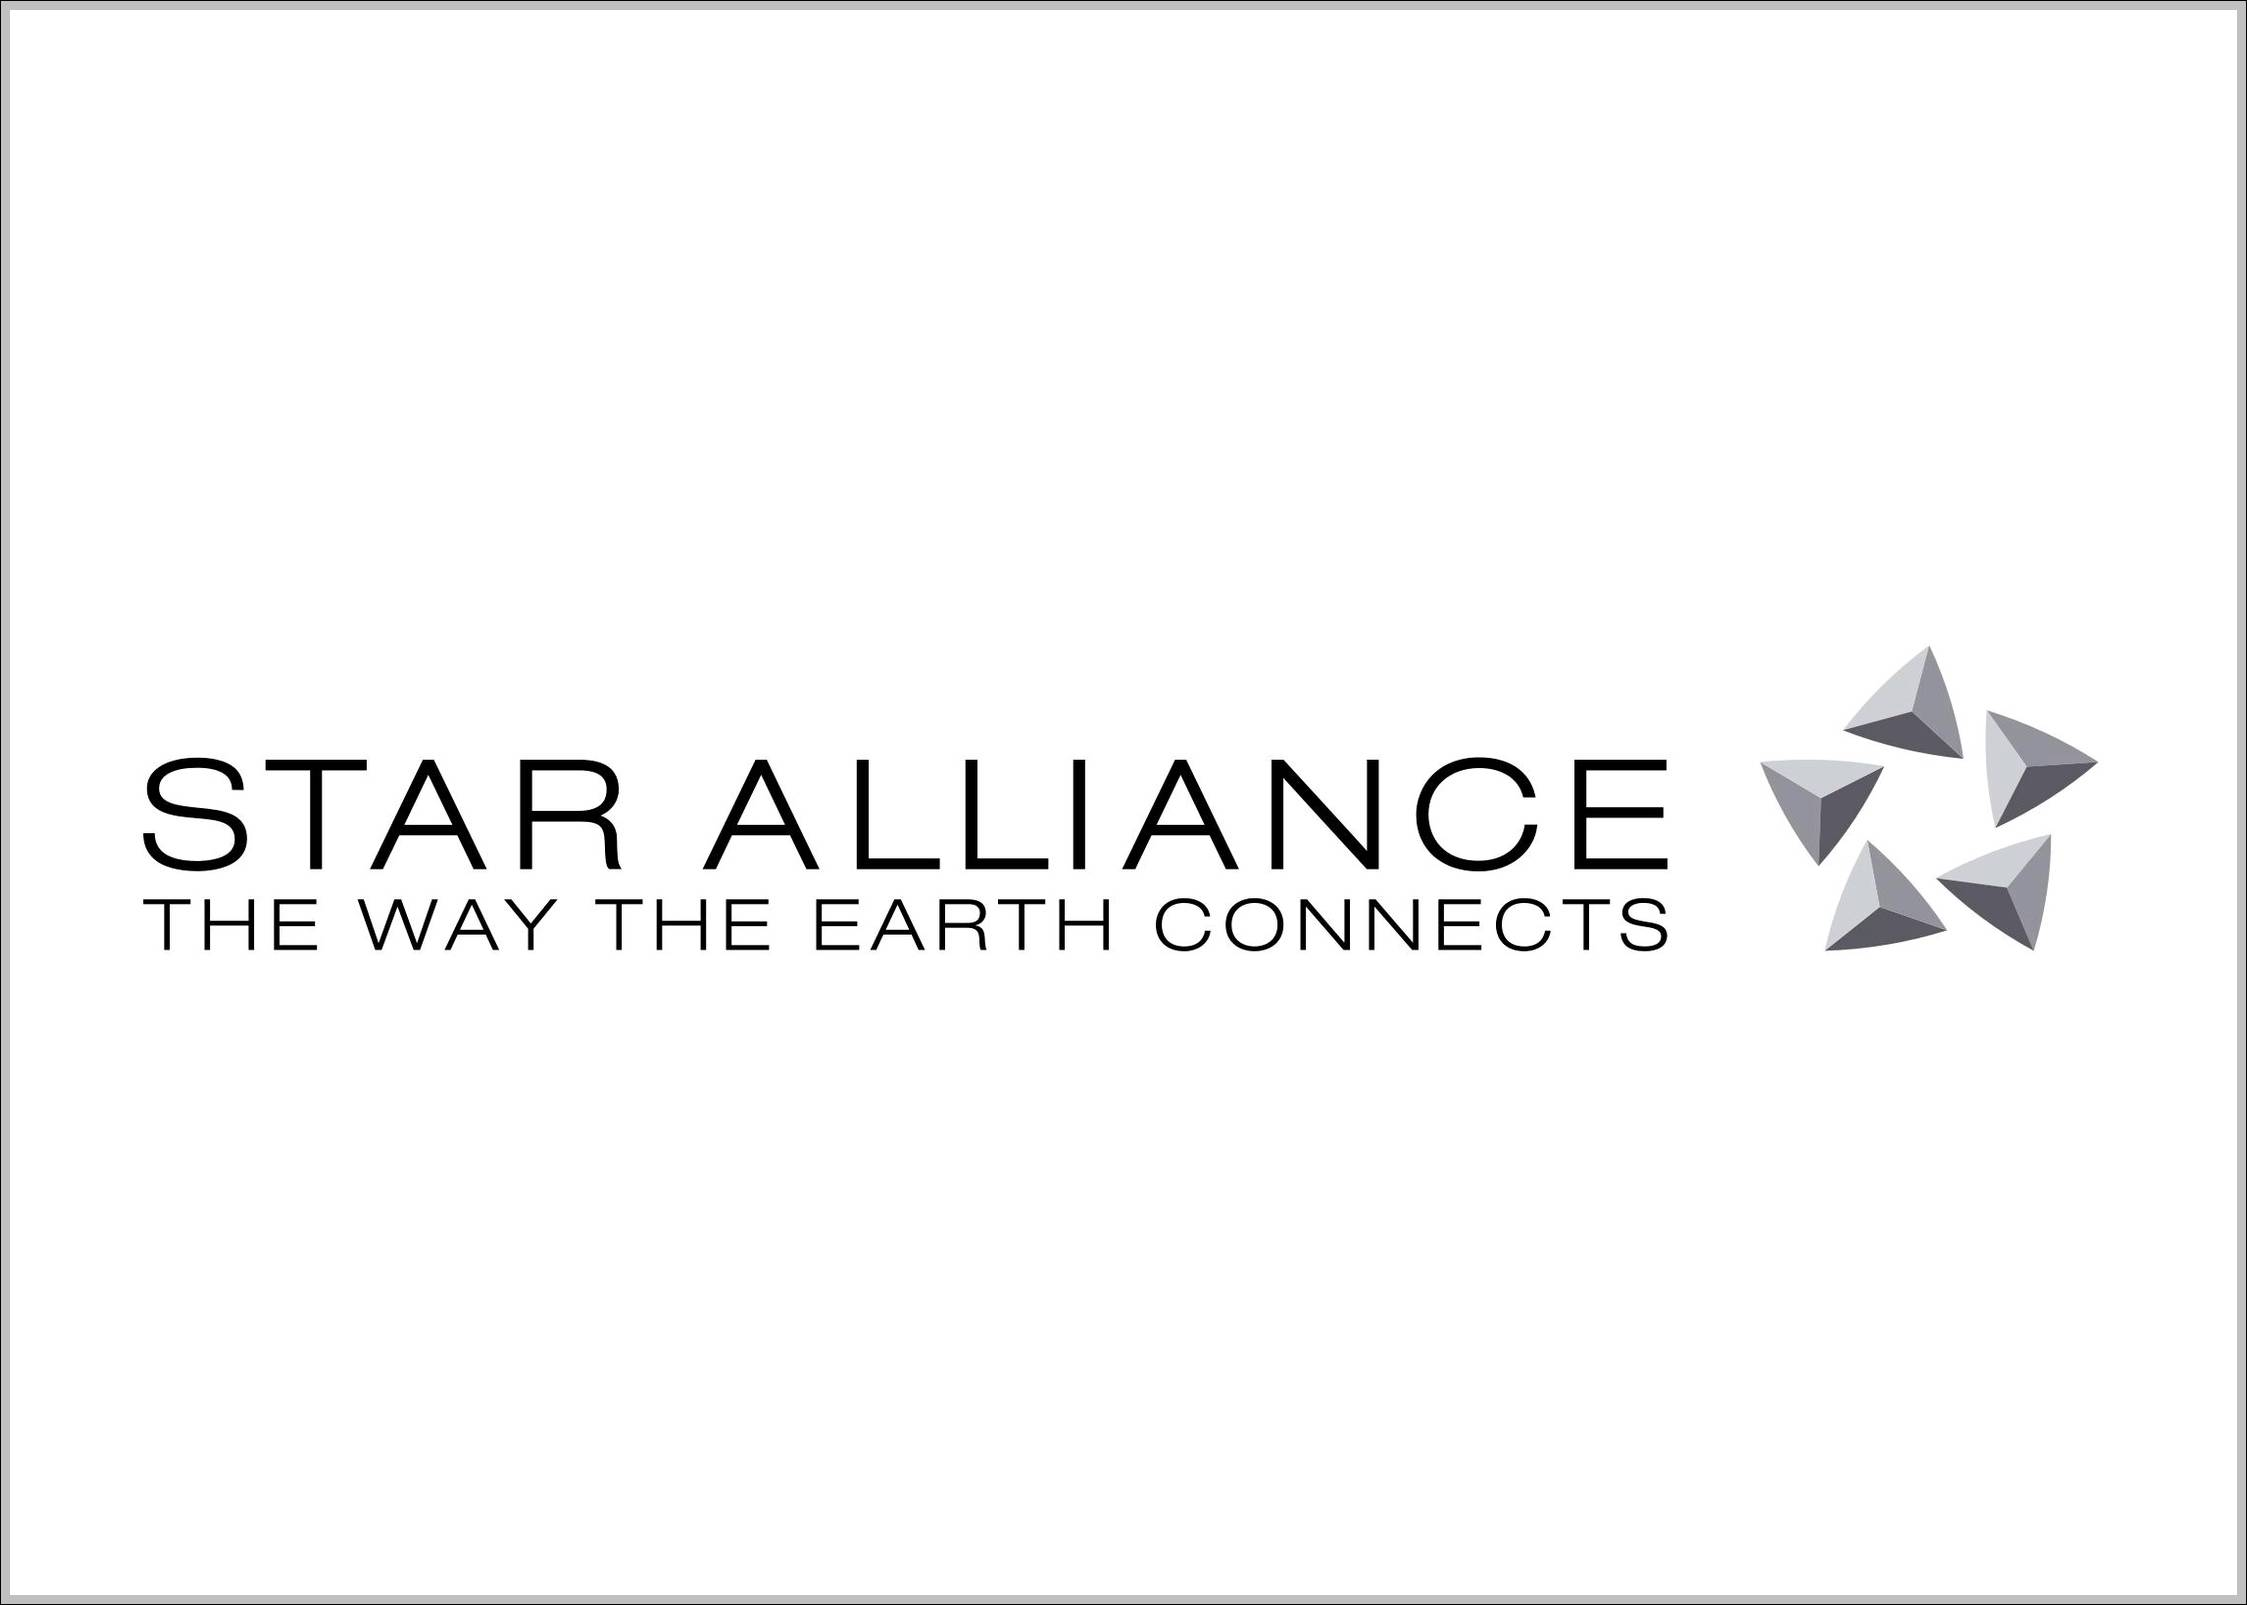 Star Alliance logo and sign